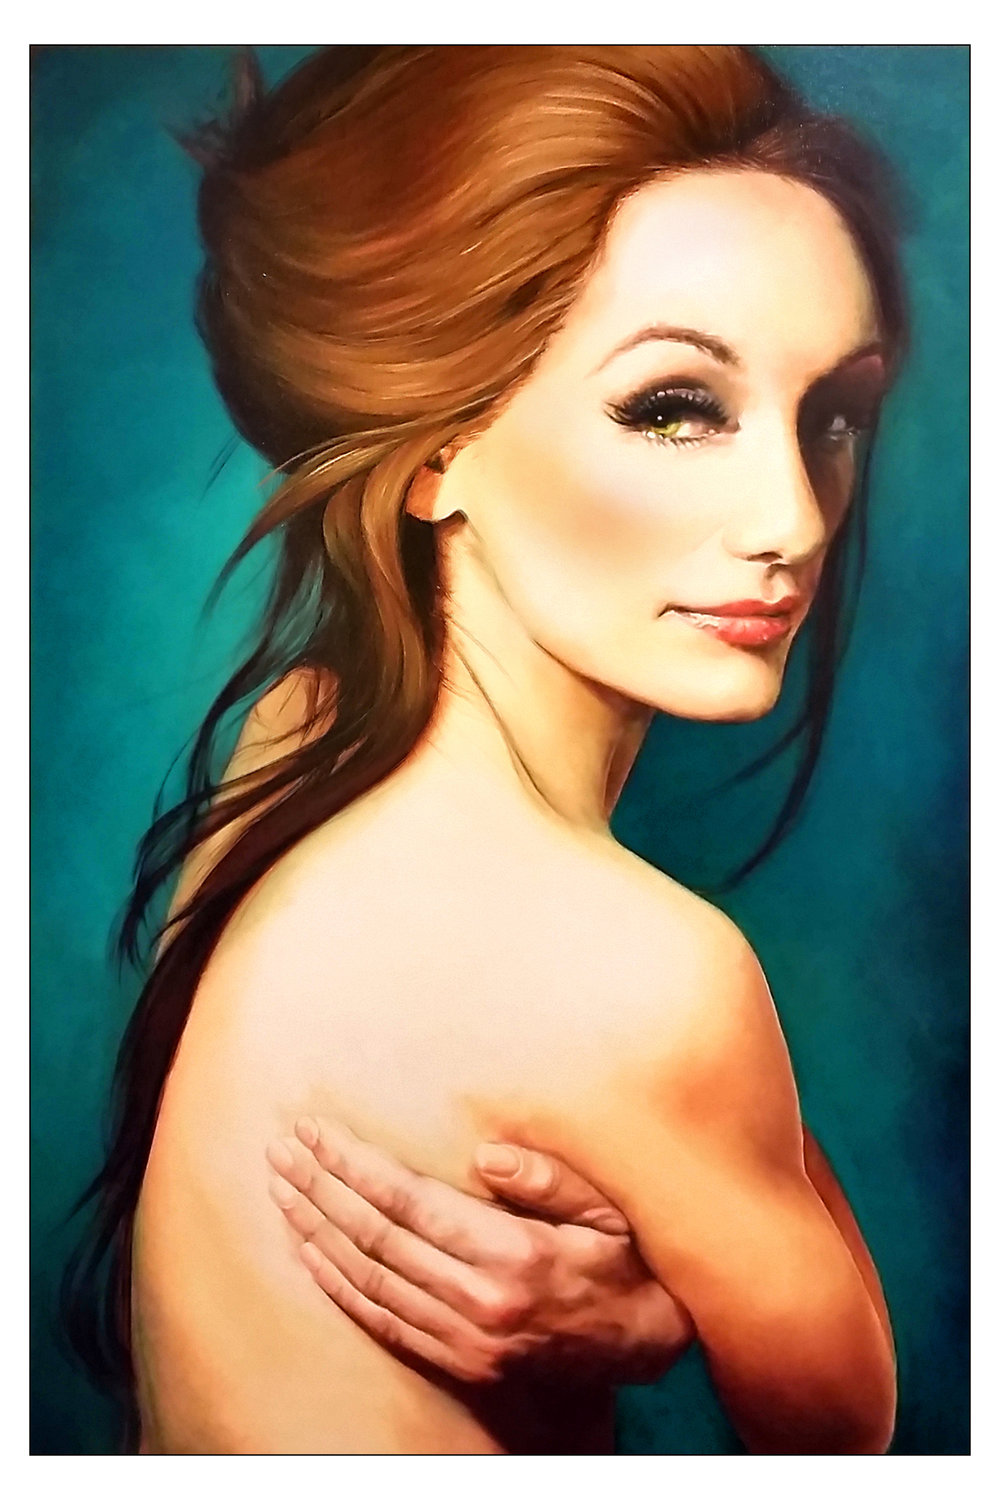 """Bare"", 2015, Ginger Del Rey  oil on canvas 36"" x 24"" x .5""  Sold  This is my second portrait of my dear friend Jorgi. I think she may be my muse :) Her combination of fragility, sadness and grace is so compelling. She always tells a story with her face. She's a complicated girl- at times she's bold and energetic, ready to befriend the world with her bohemian style and playful energy. At other times, she's reclusive, fragile and filled with self-doubt. A beautiful paradox. I think it's her polarized personality that draws me to paint her over and over again, forever trying to capture her state of mind."